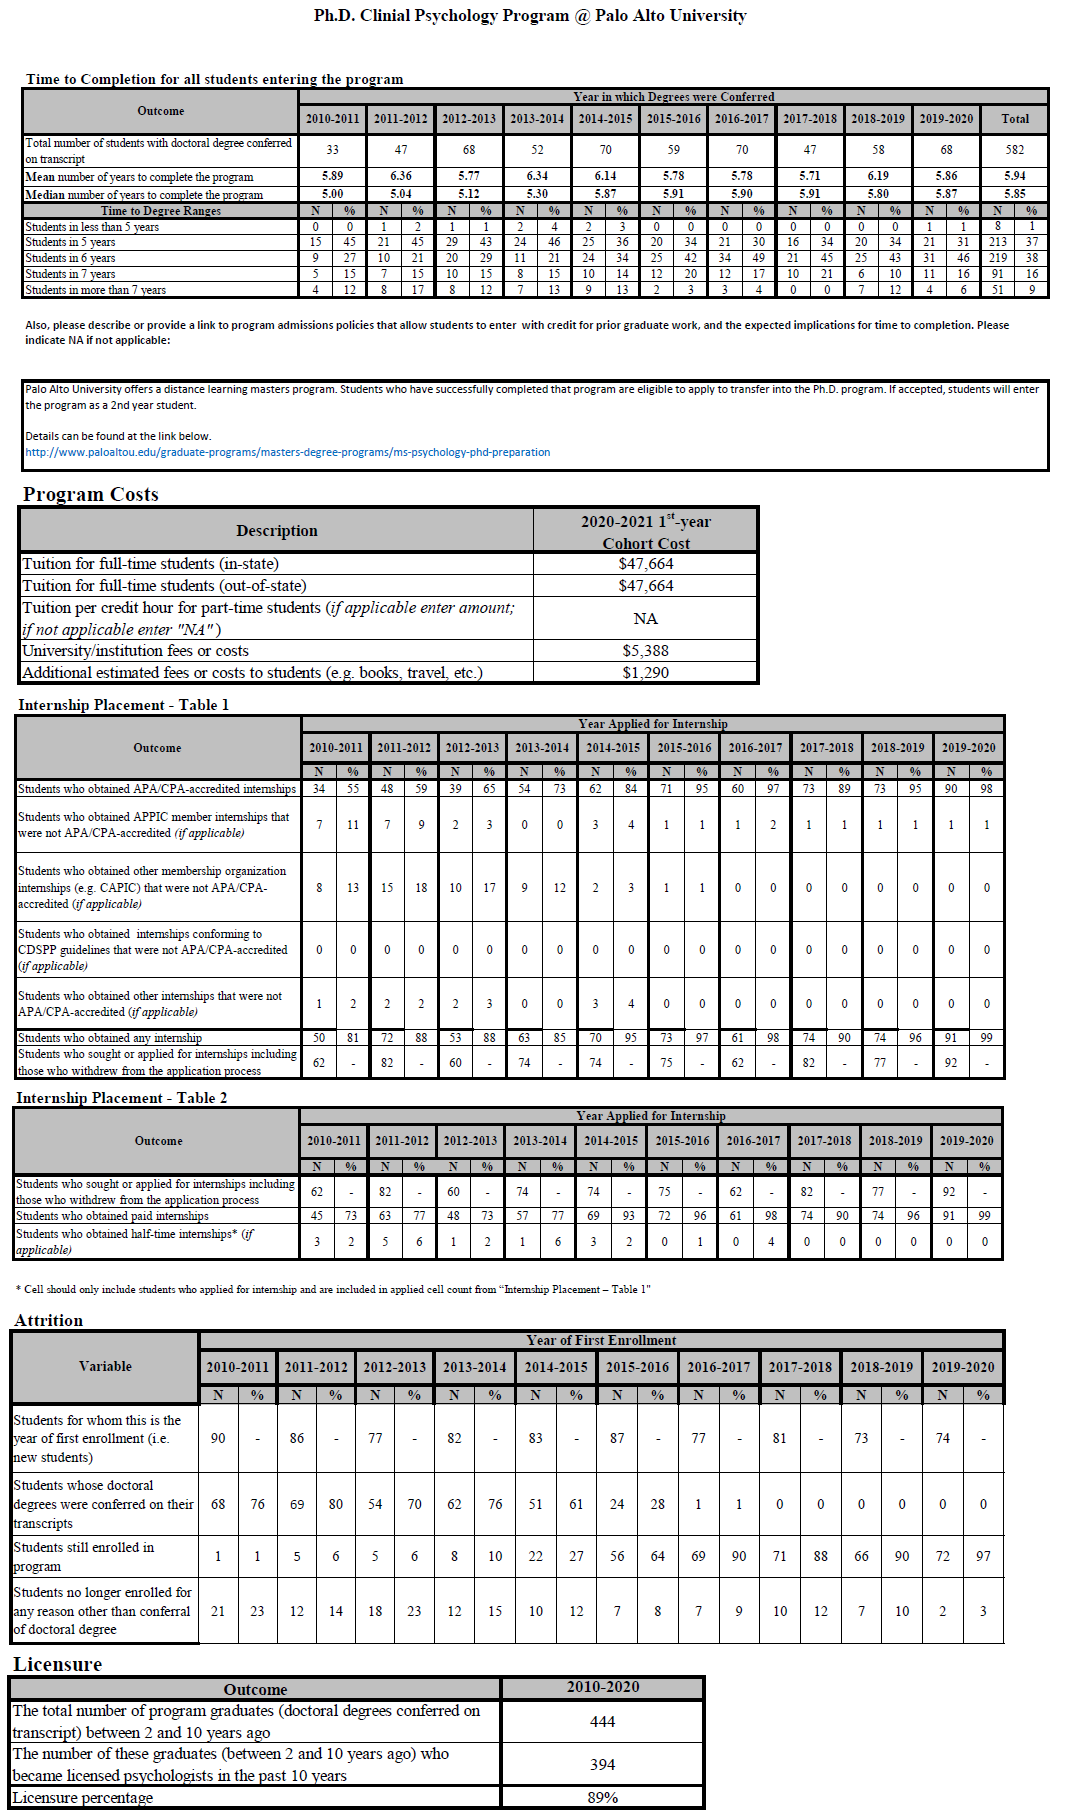 APA Data Tables displaying time to completion, tuition, internship, attrition, and licensure data